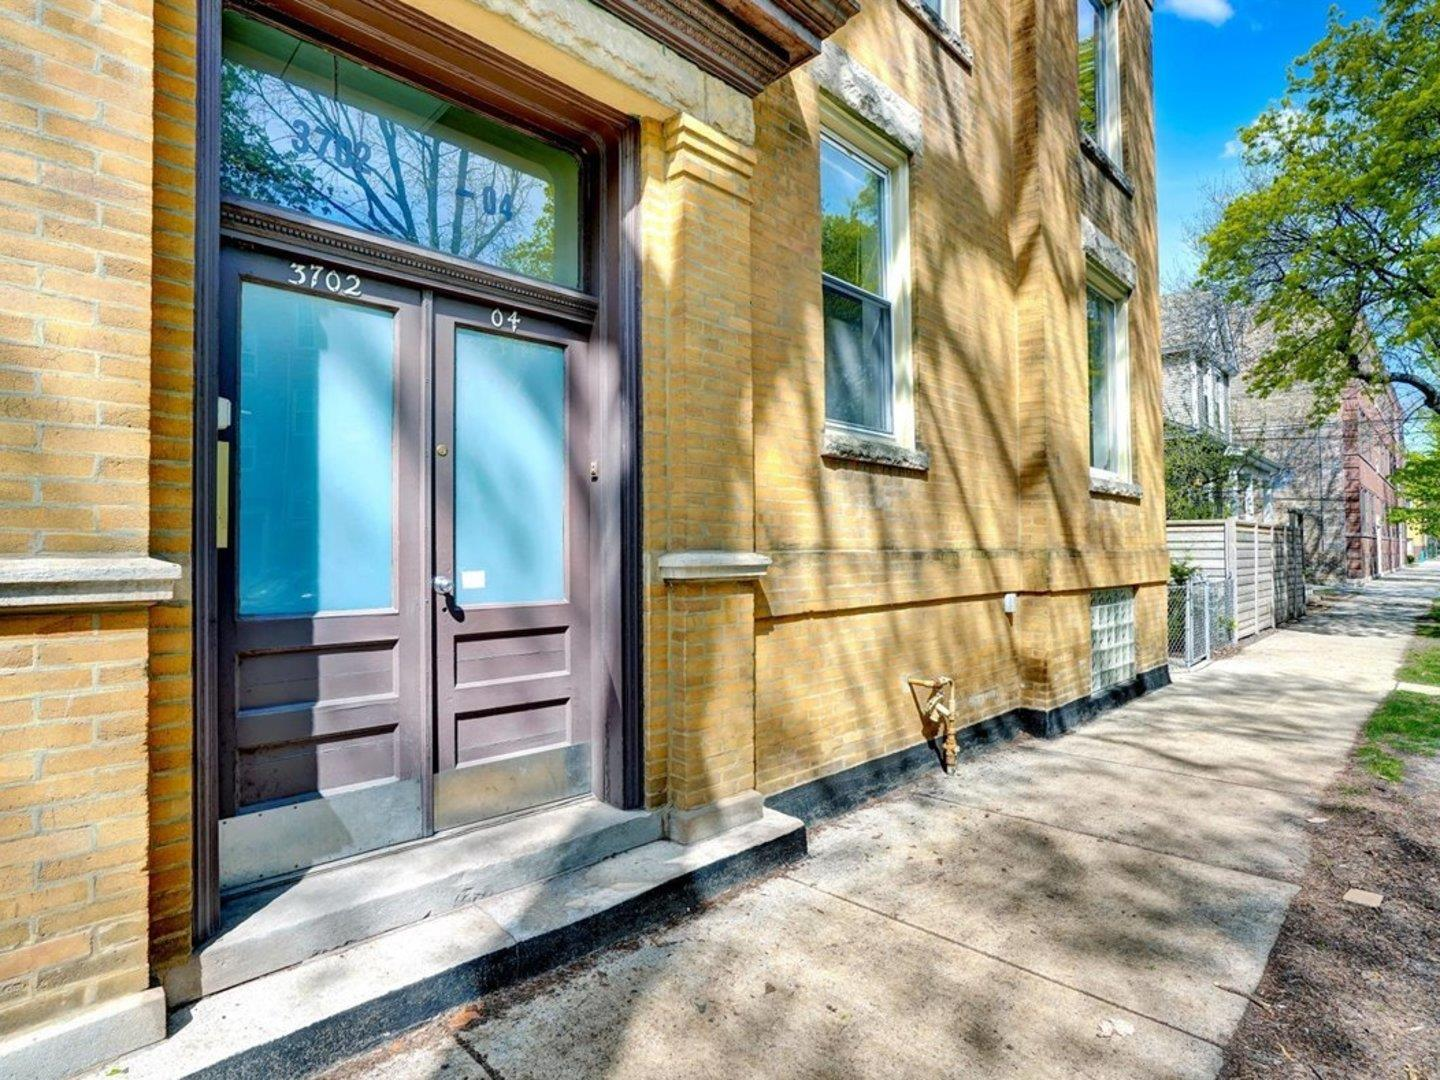 3702 N Hoyne Avenue, Chicago, IL 60618 - #: 11059066